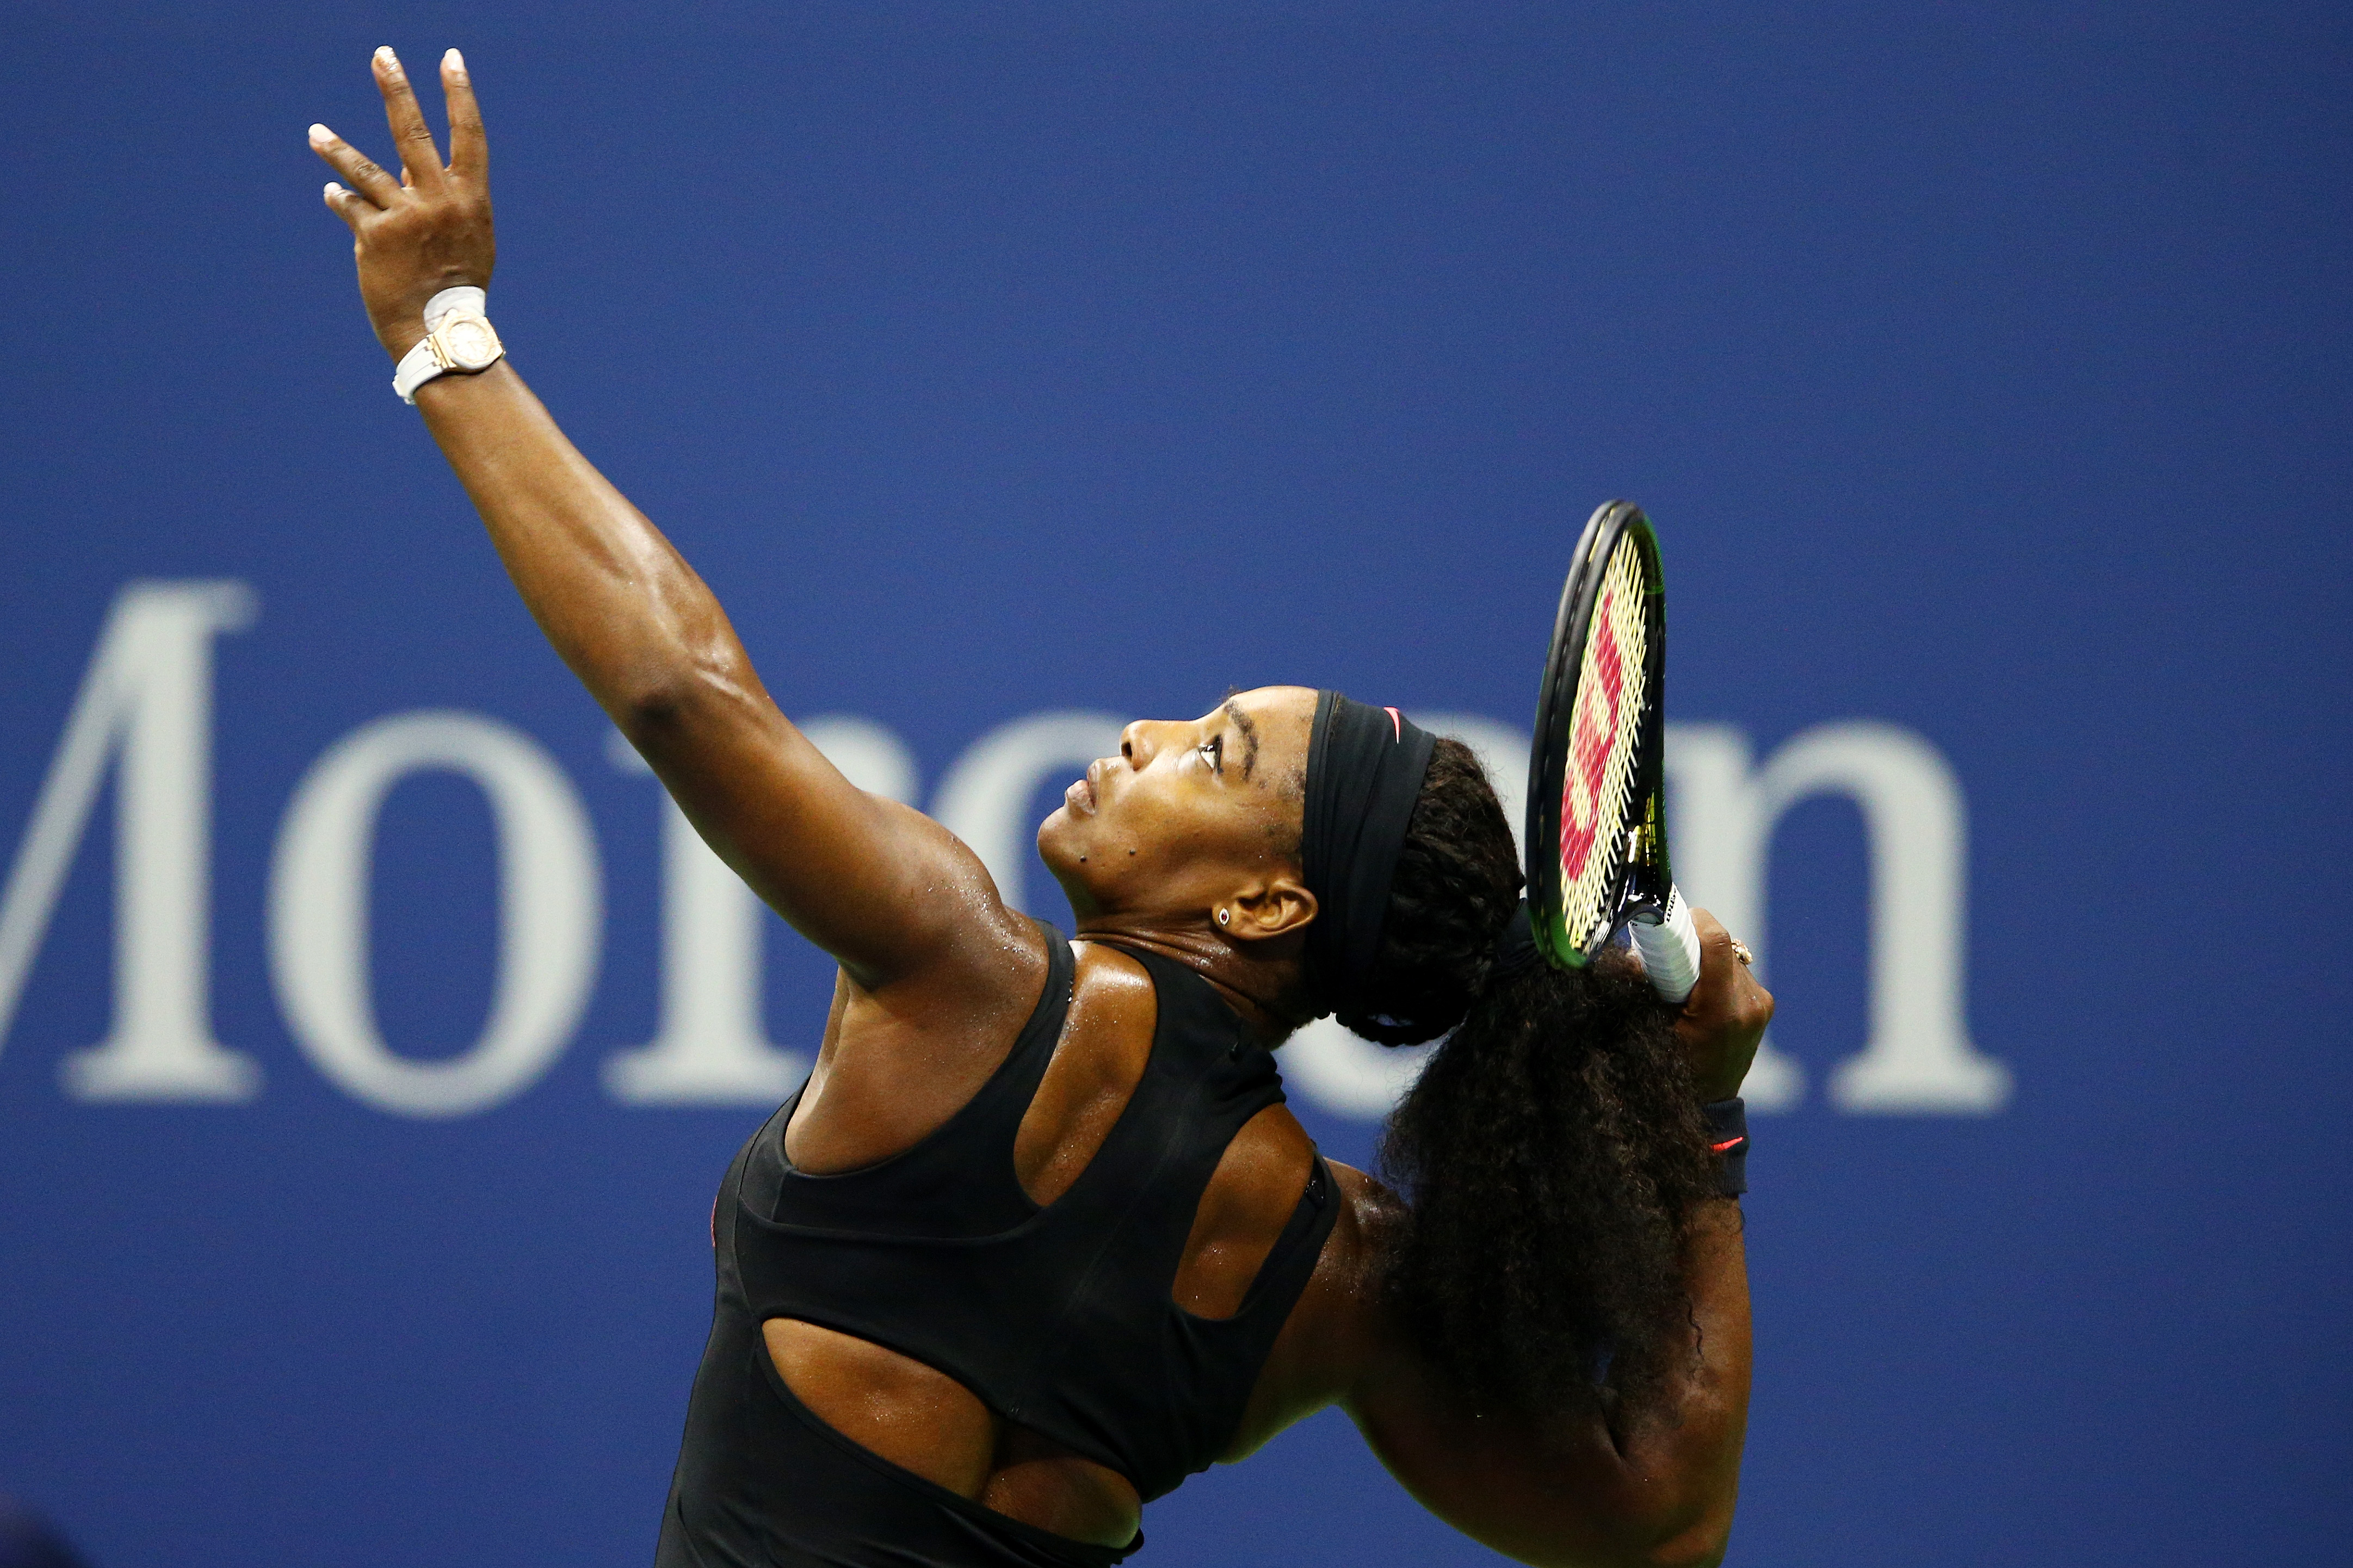 on Day Nine of the 2015 US Open at the USTA Billie Jean King National Tennis Center on September 8, 2015 in the Flushing neighborhood of the Queens borough of New York City.